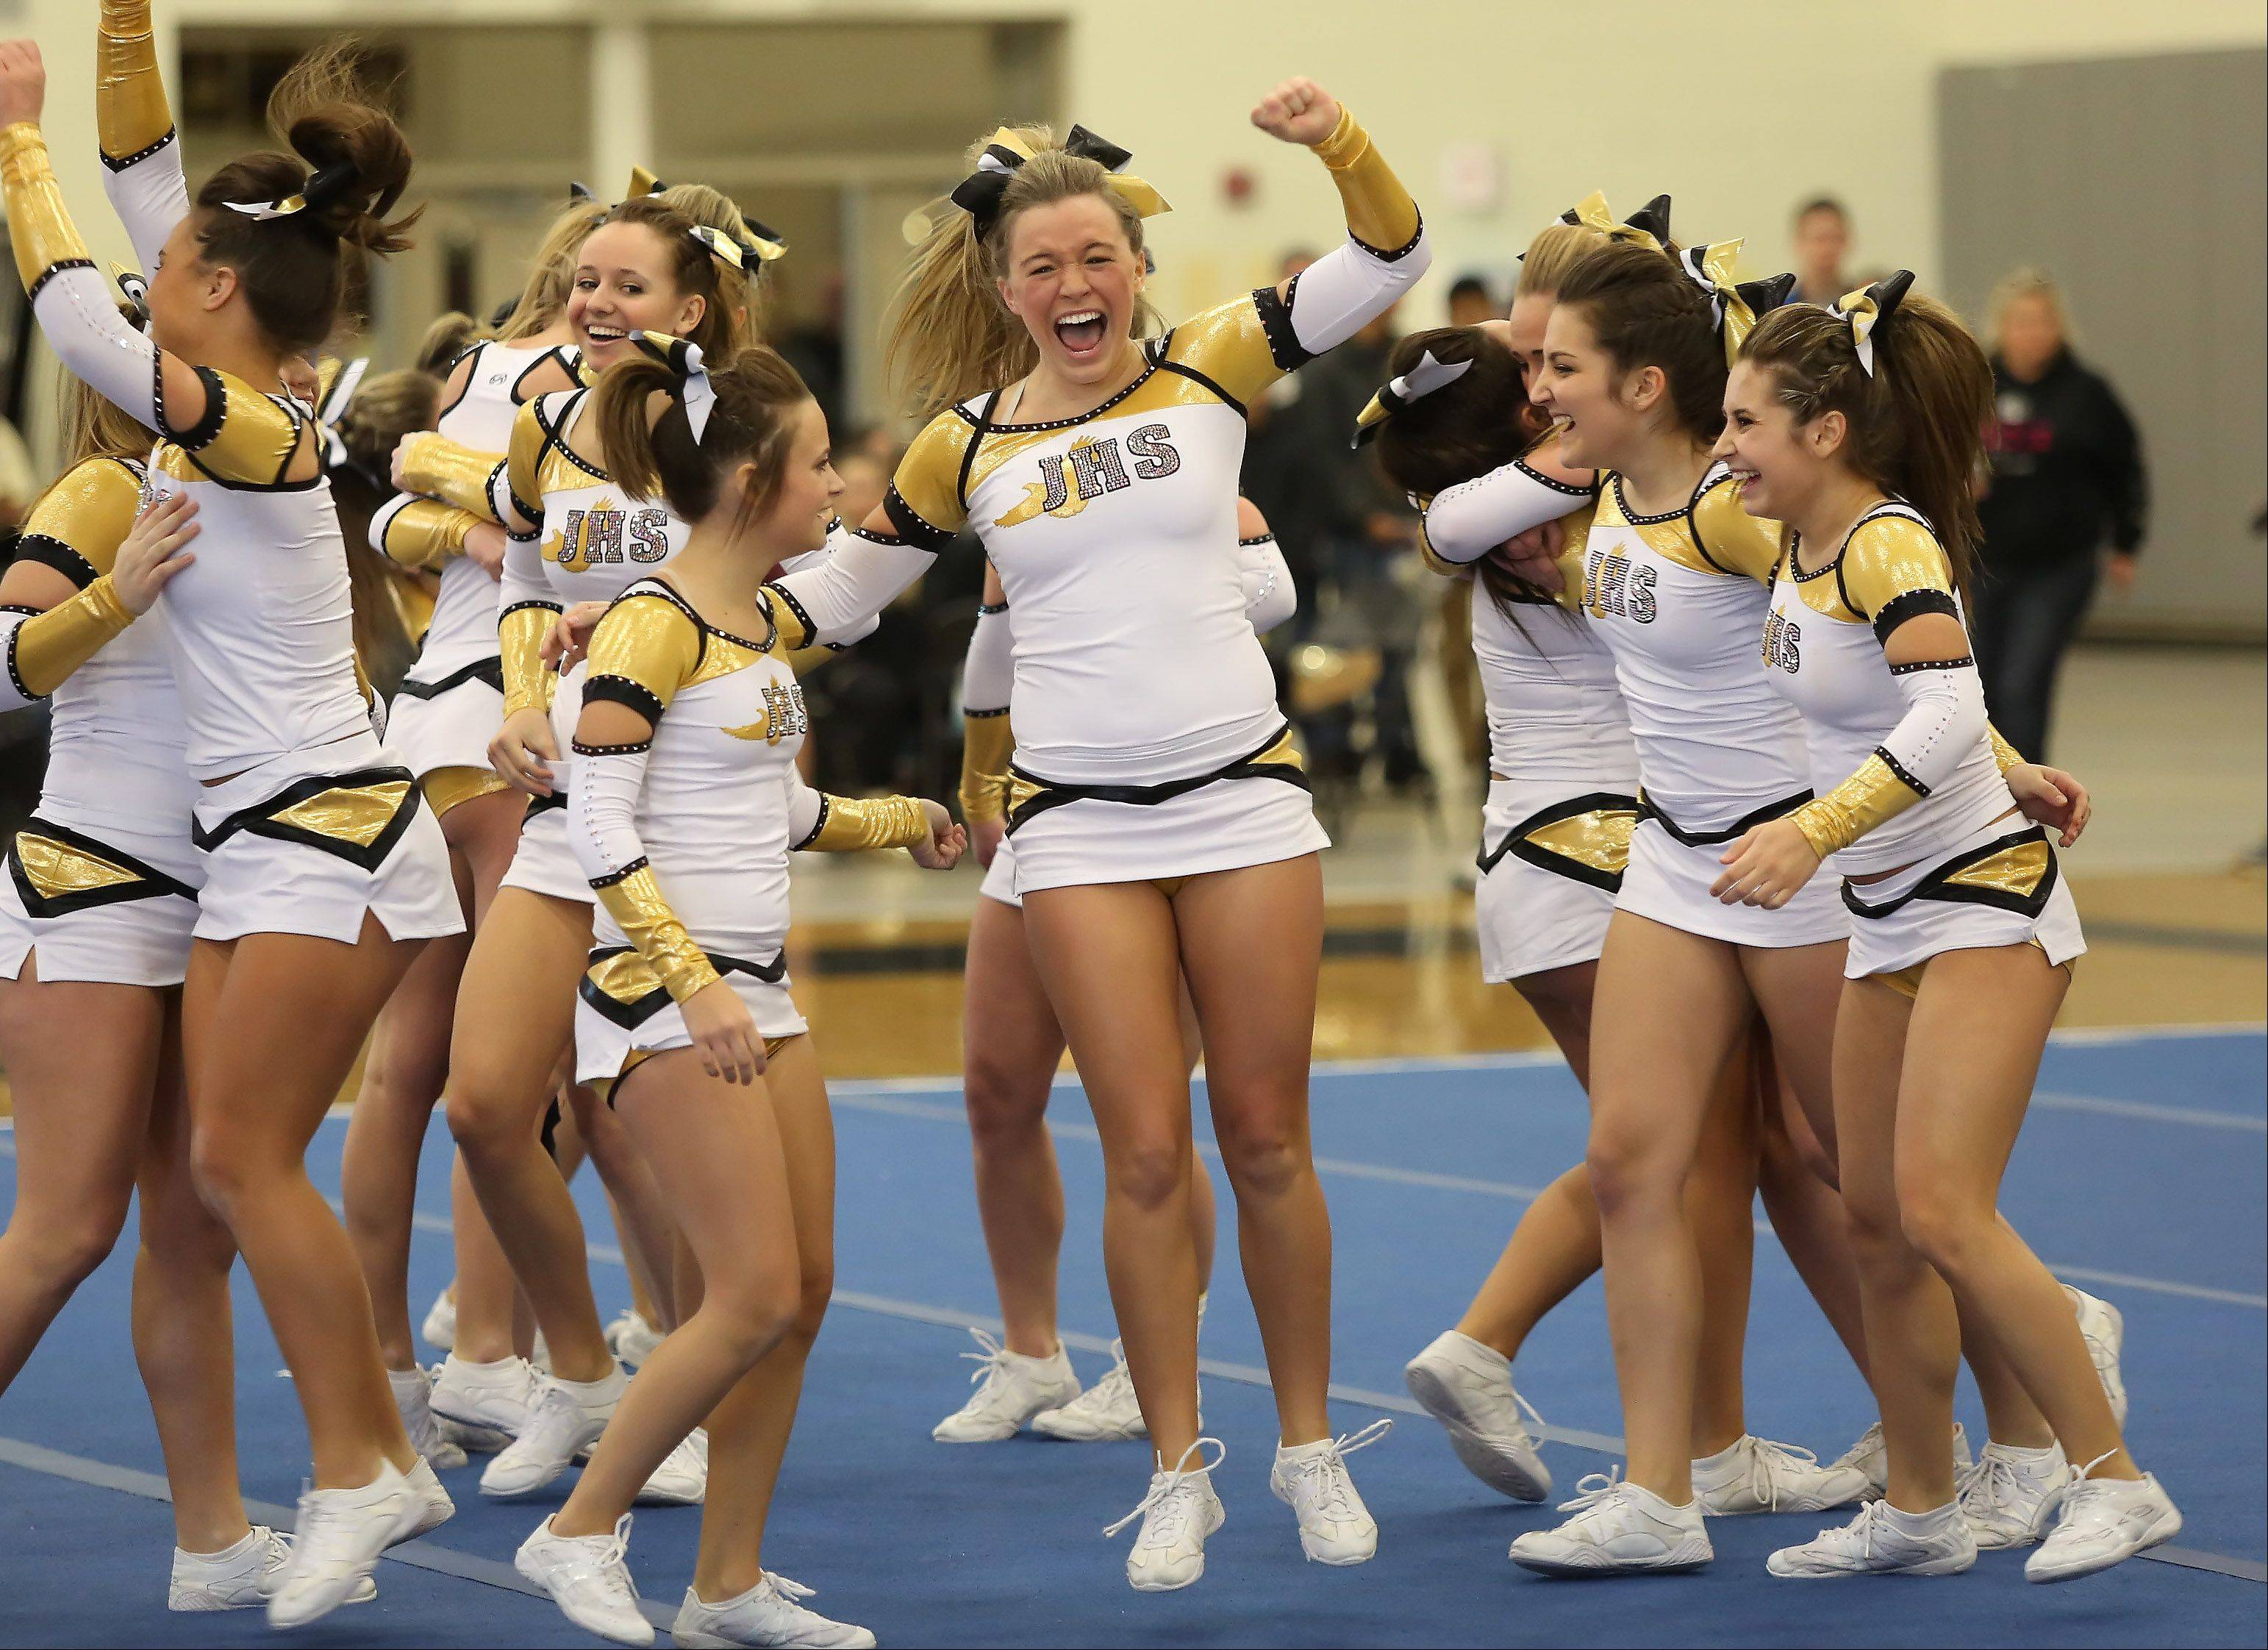 Jacobs High School cheerleader Ally Jefferson, center, jumps for joy with her teammates after they competed in the Large Team category during the IHSA Cheerleading Sectional Sunday hosted by Grayslake North High School.